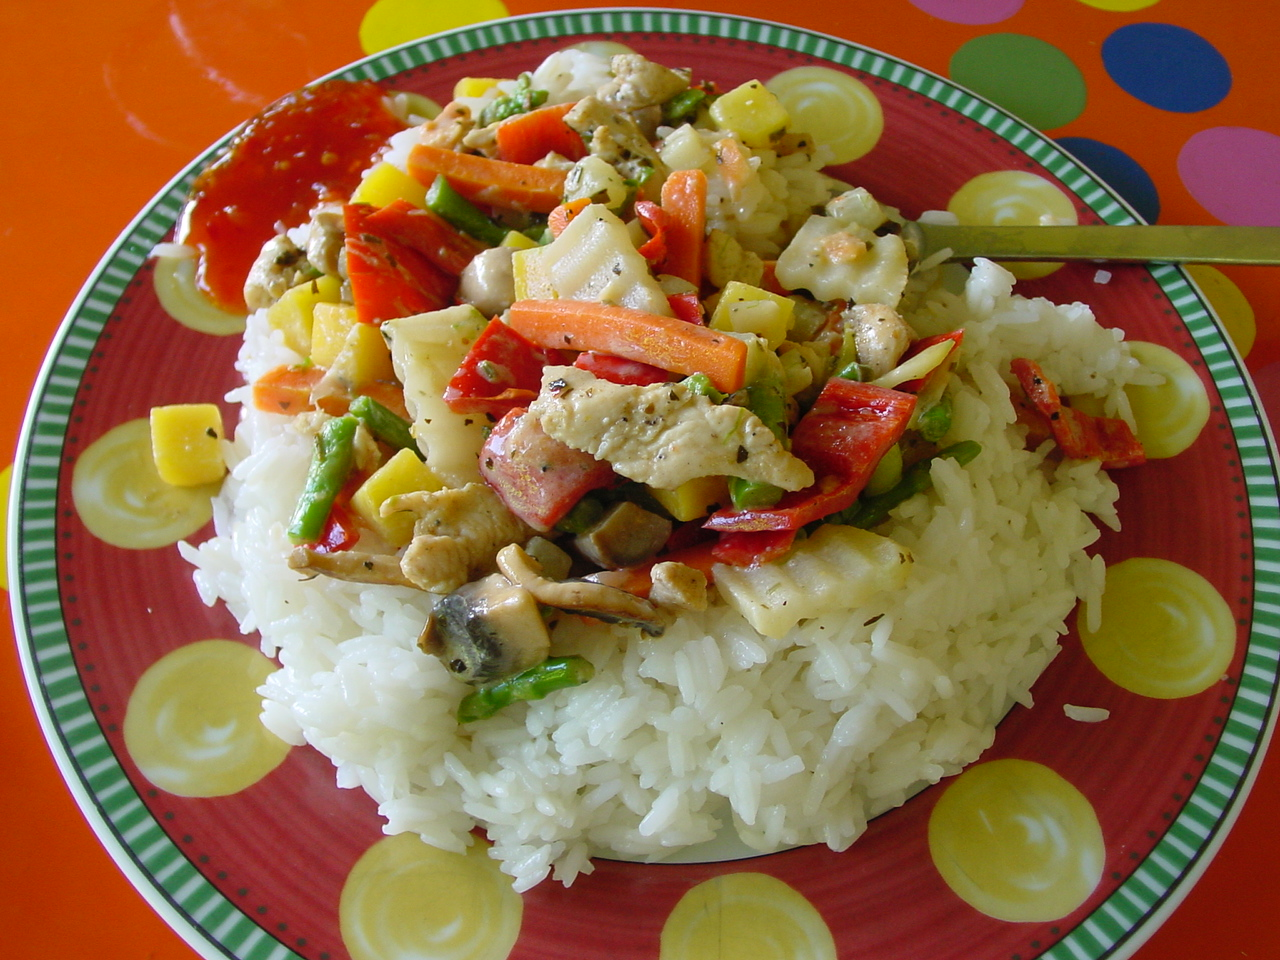 https://foodloader.net/xSh_2007-05-19_rice_vegetables.jpg